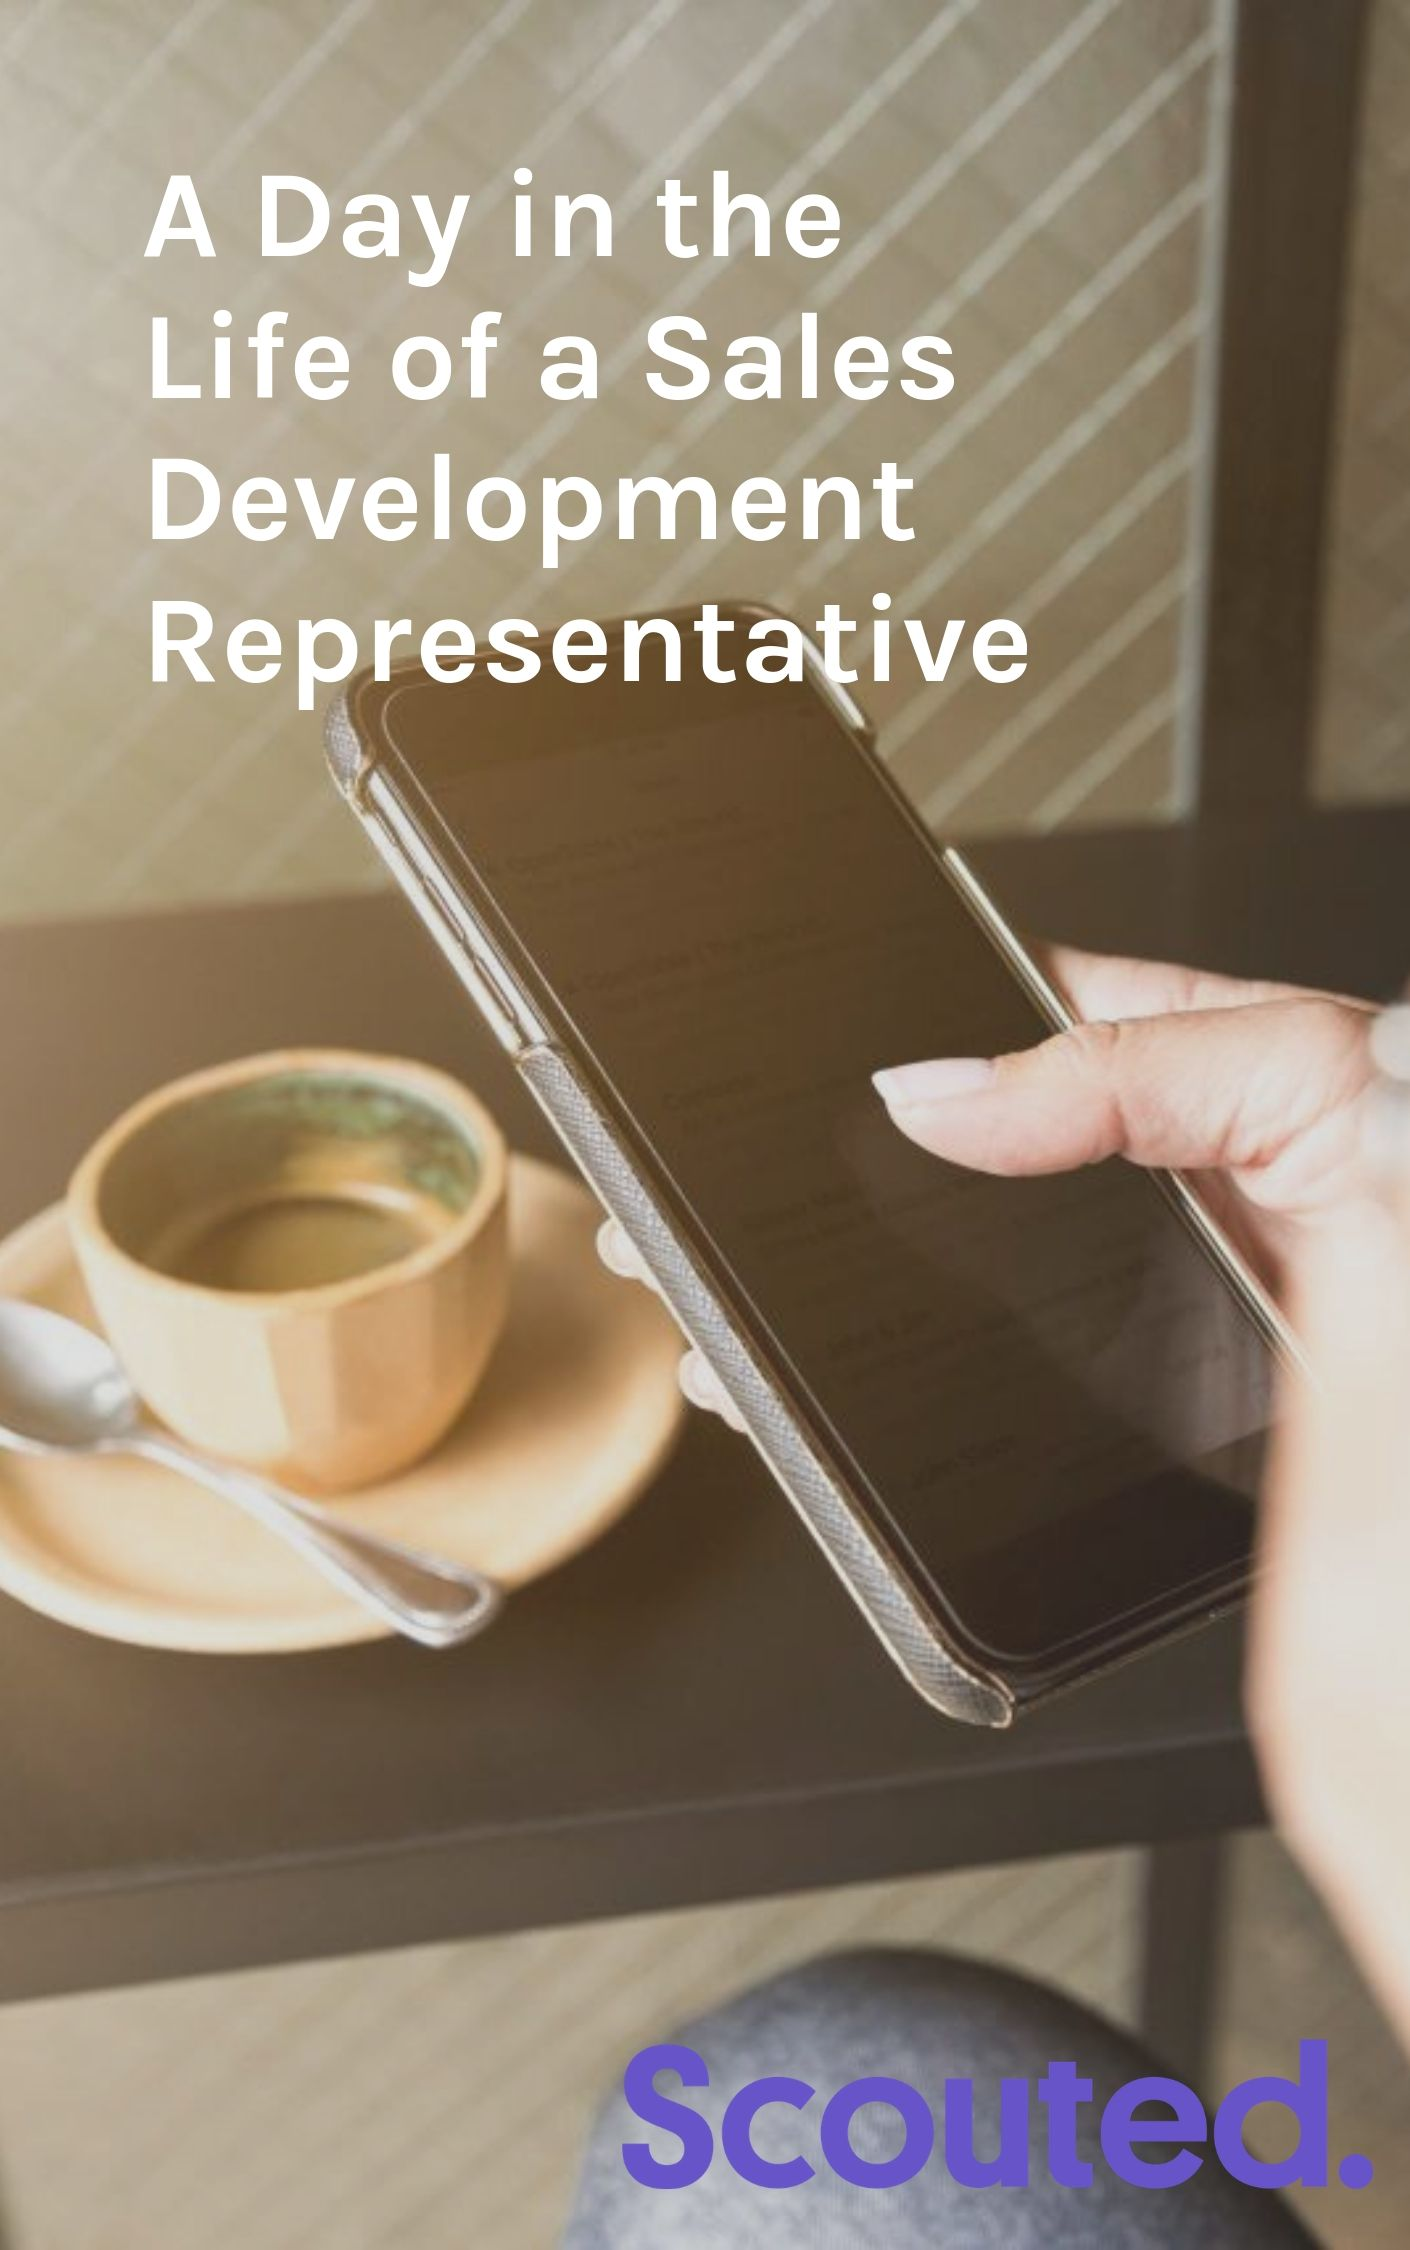 There are few careers that test basic abilities and tough skin more so than Sales. Within Sales, Sales Development Representatives are the drivers of the sales team. If a company is a military organization, Sales Development Representatives are the foot soldiers whose basic tasks can tip the scale in favor of success or failure.